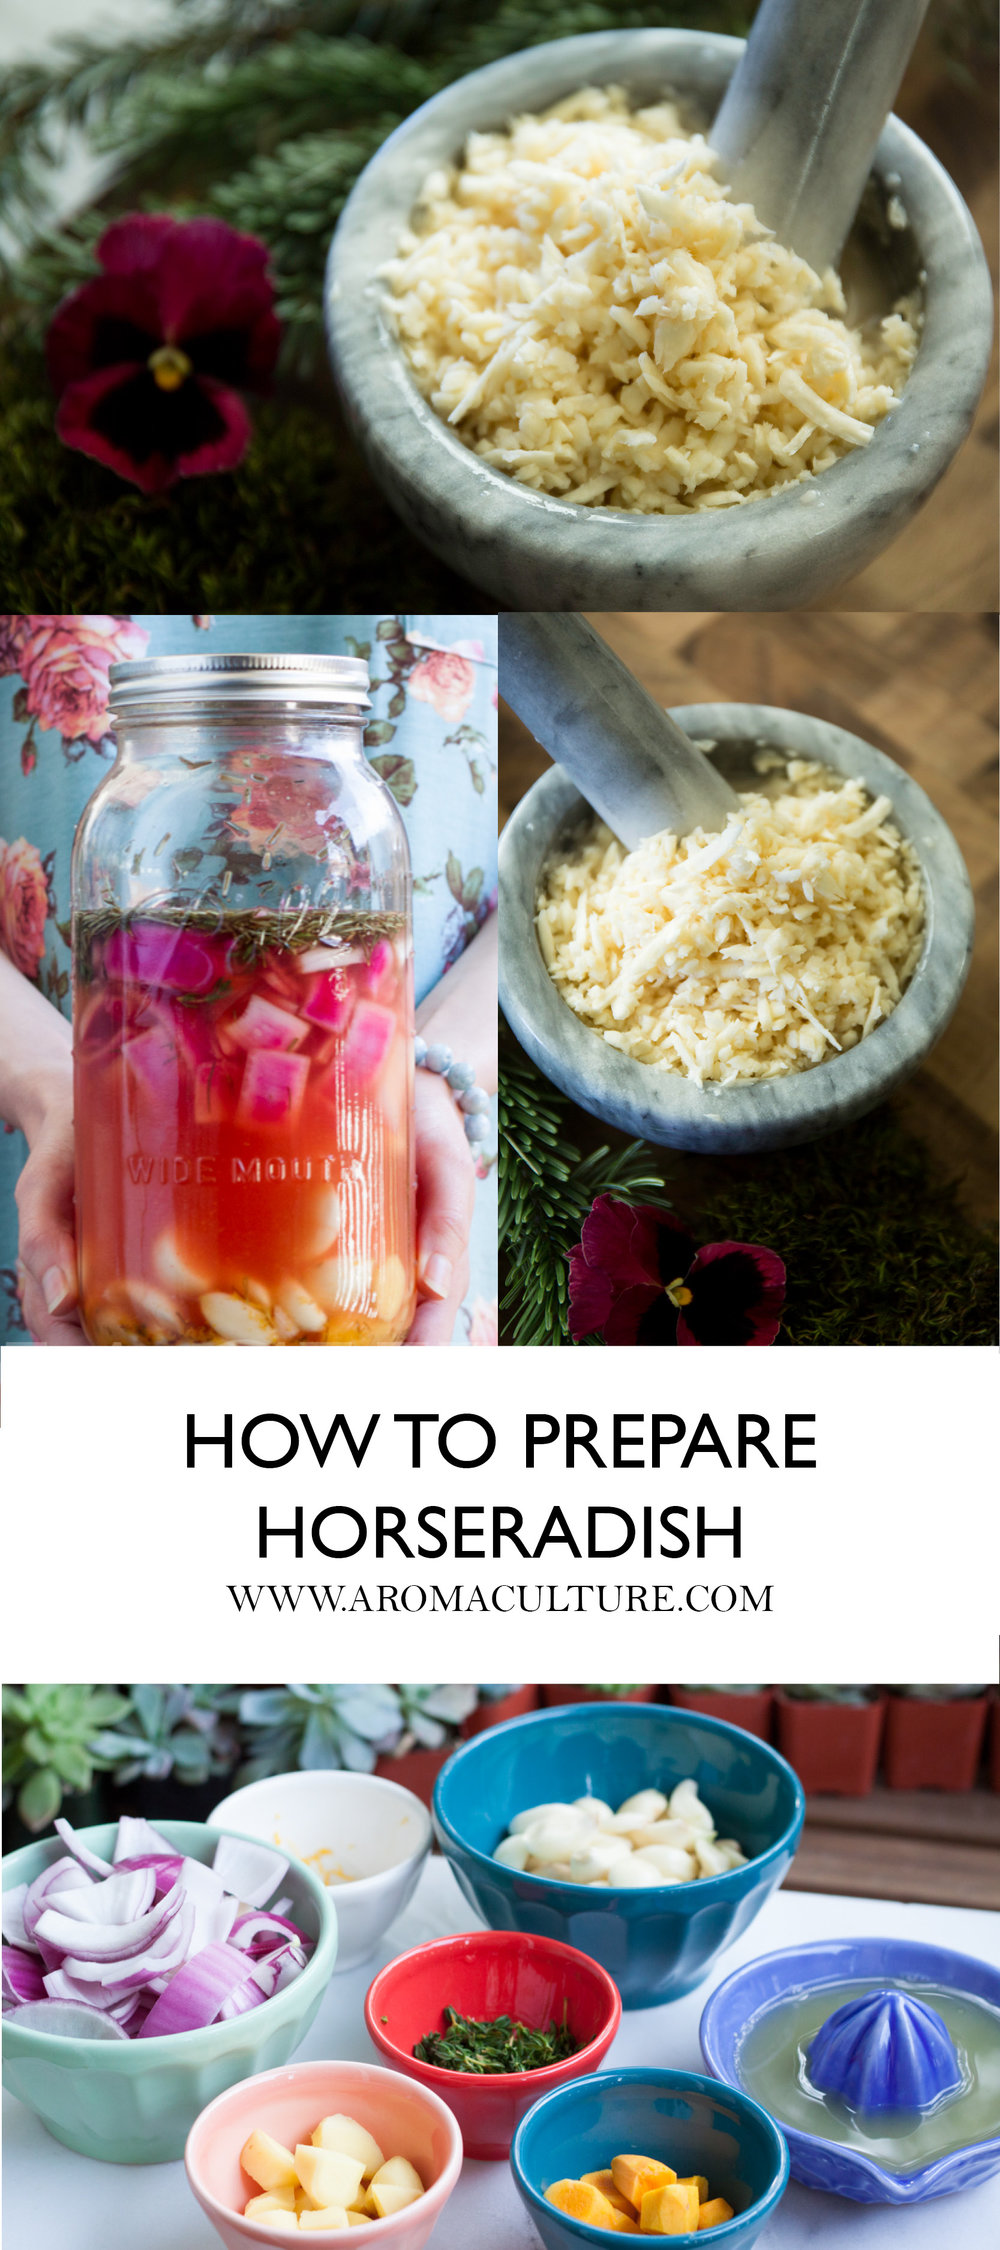 HOW TO PREPARE HORSERADISH.jpg